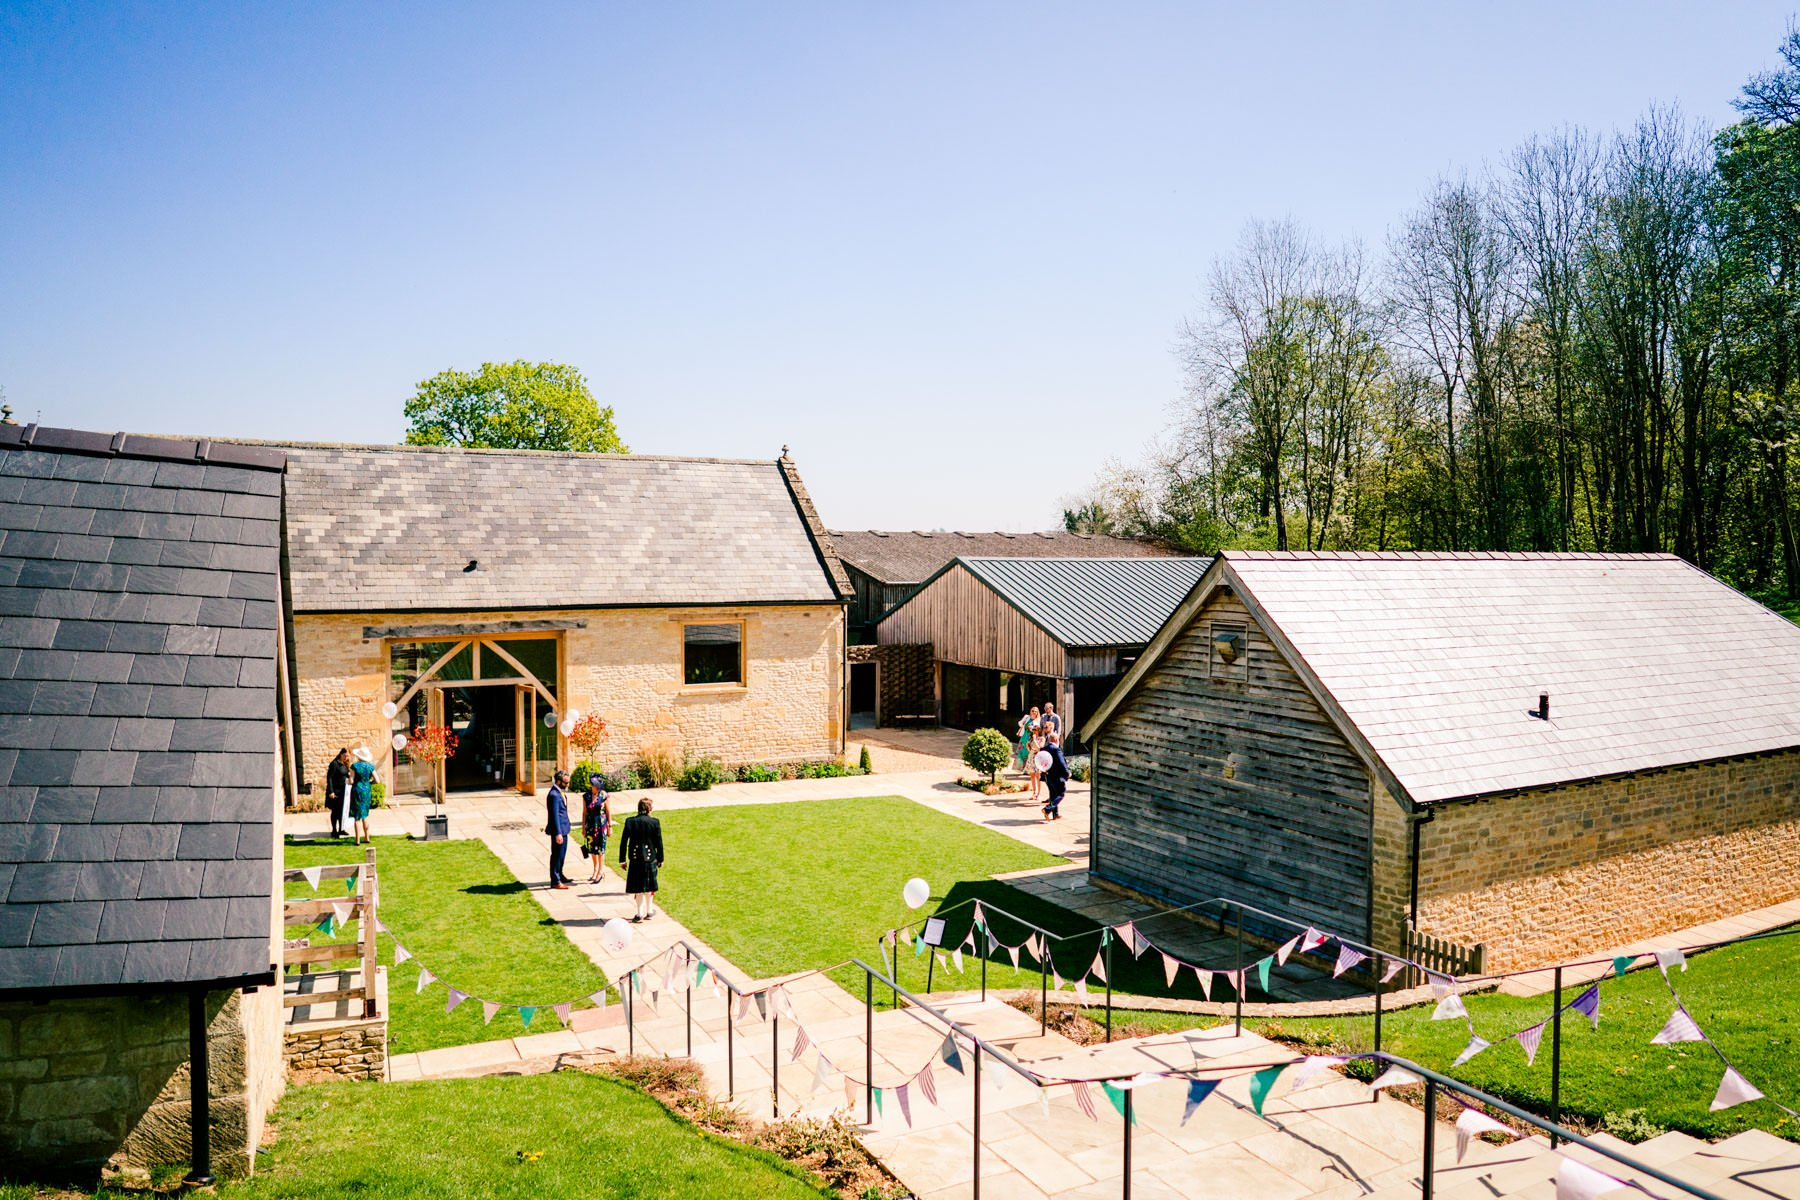 The Barn at Upcote